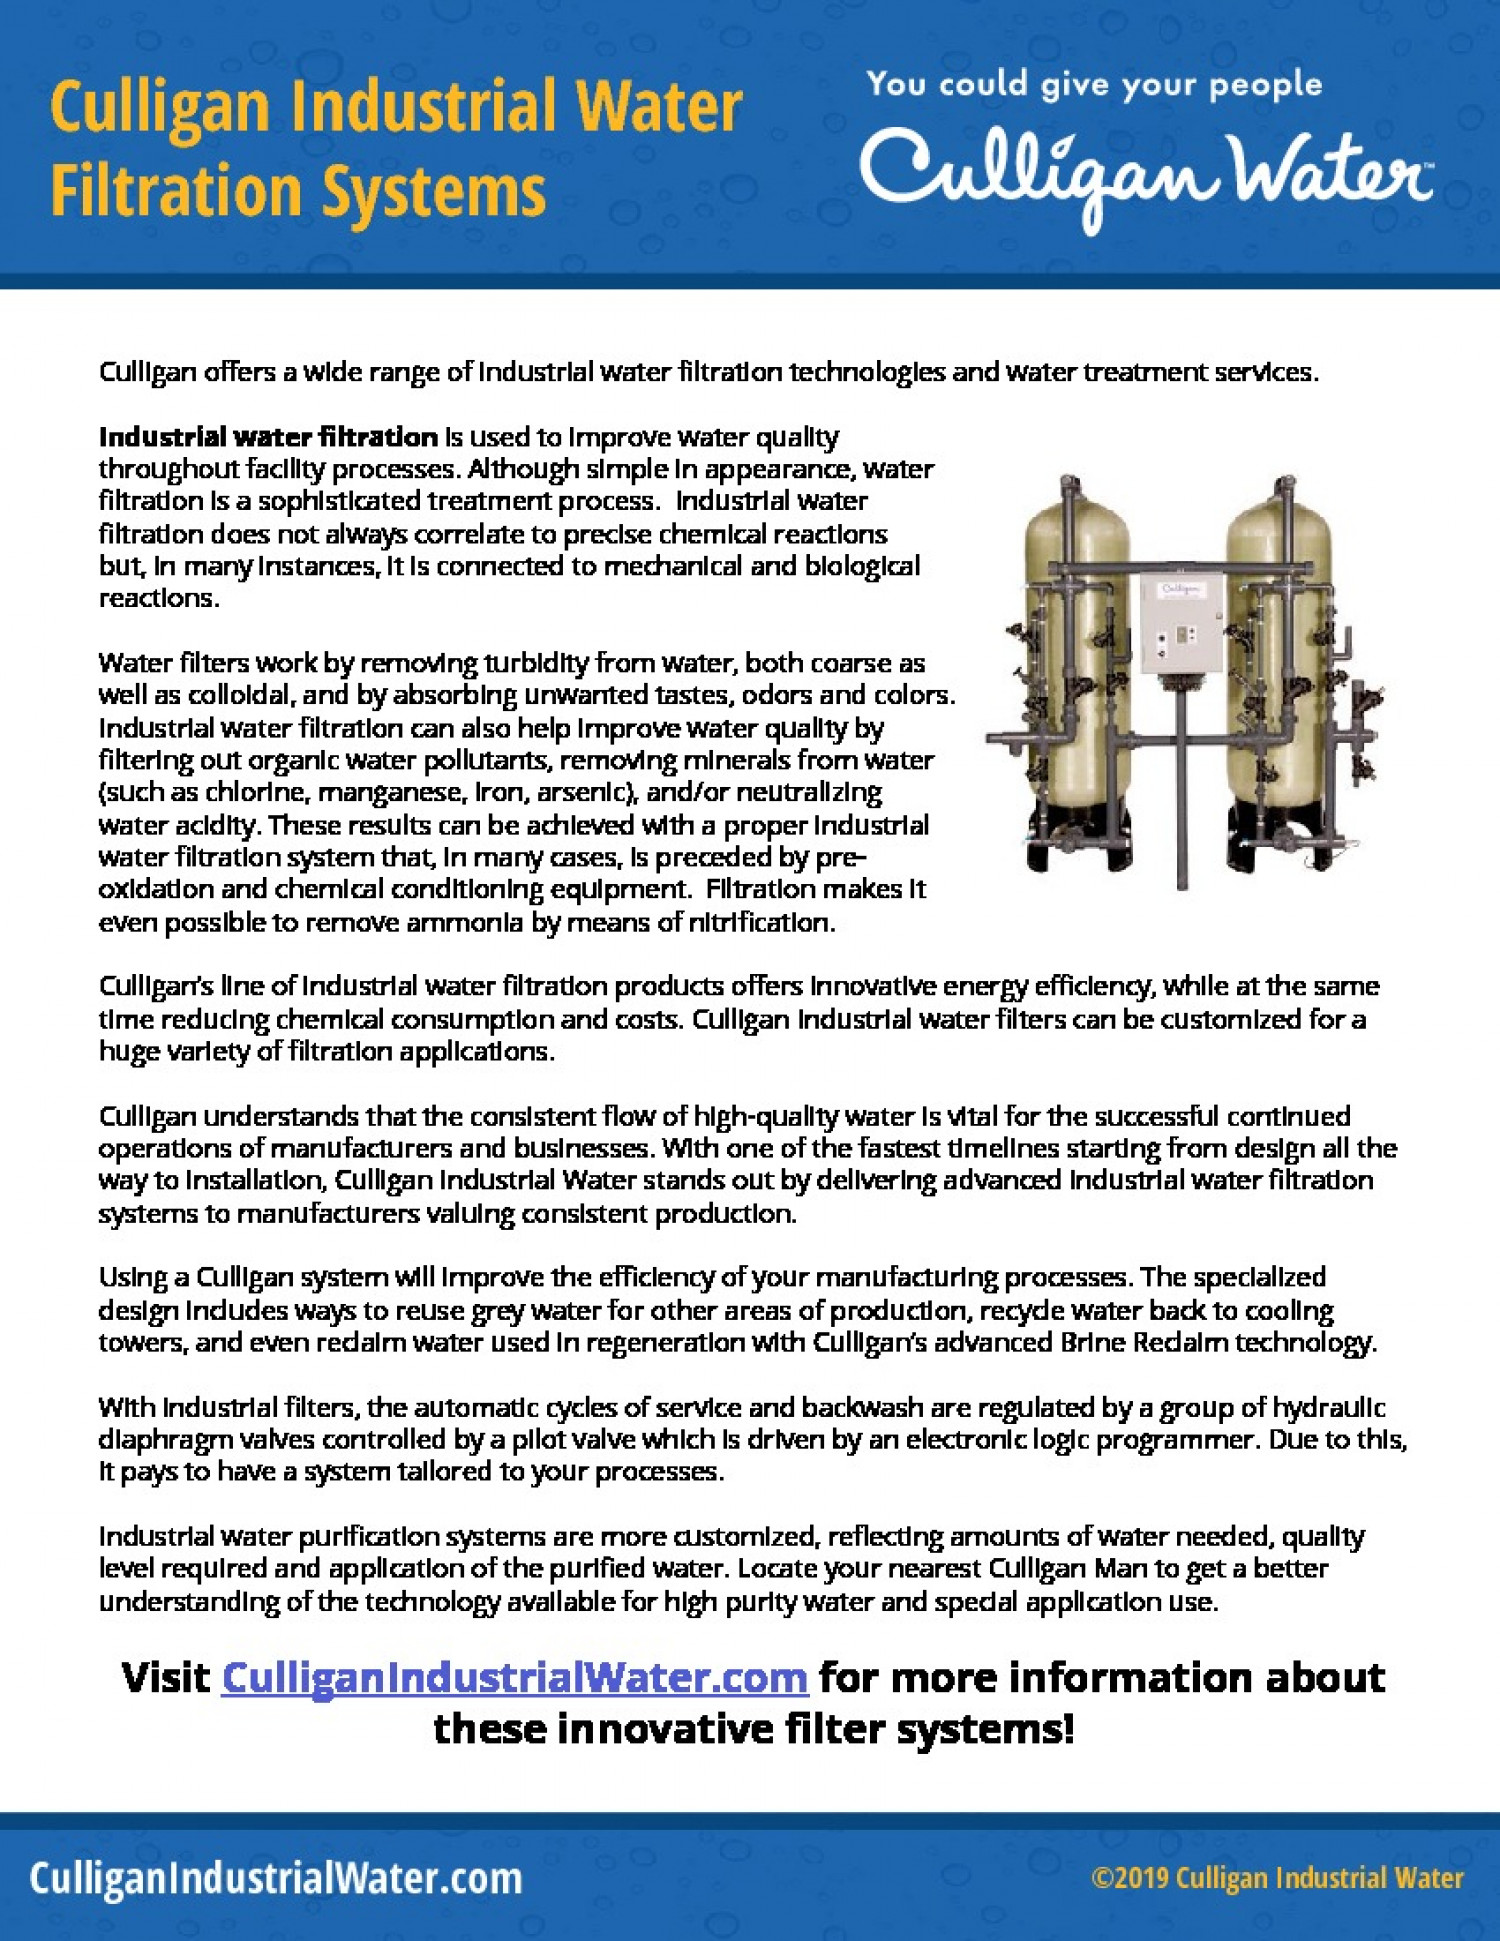 Culligan Industrial Water Filtration Systems Infographic